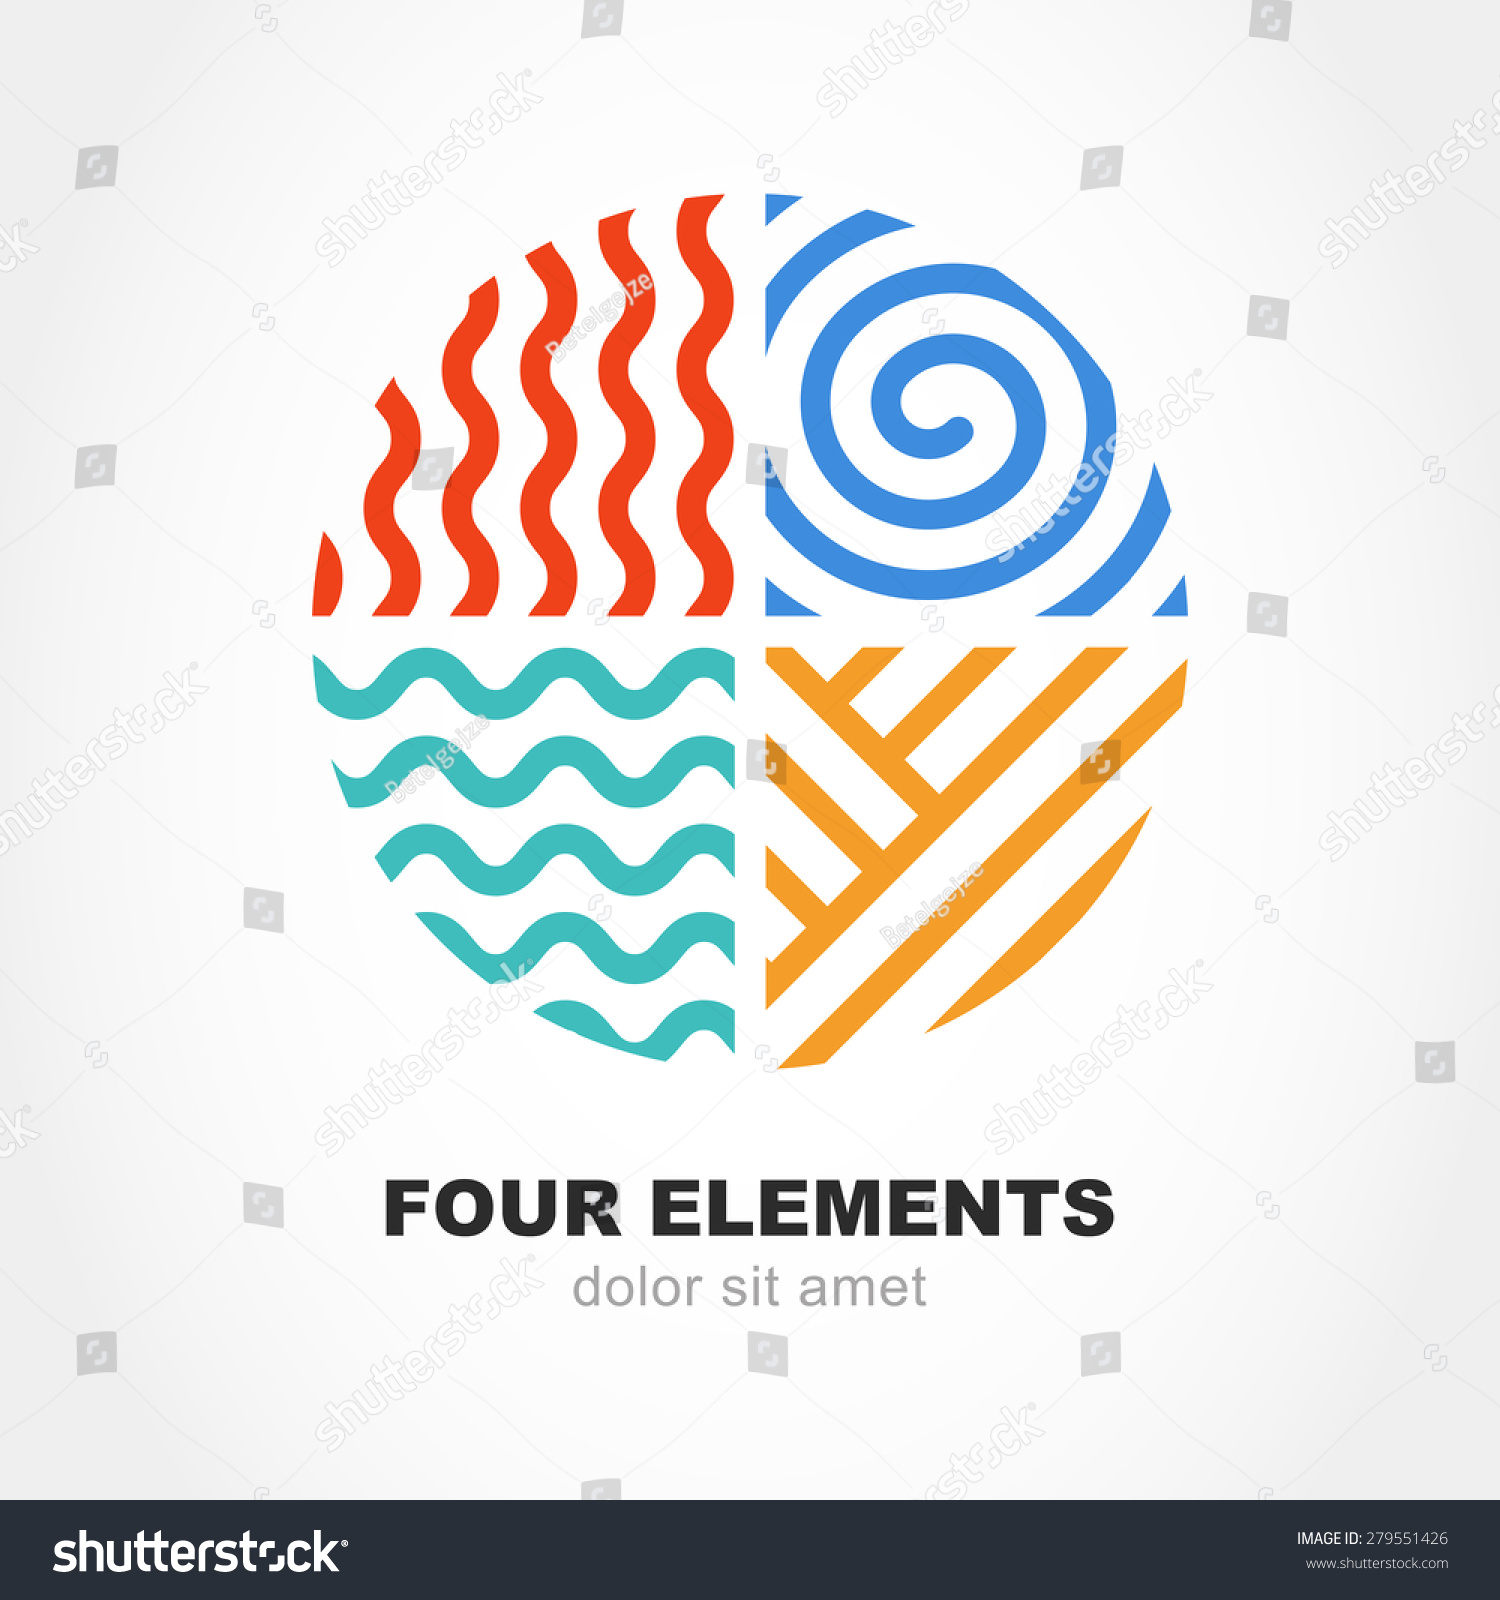 four elements simple line symbol circle stock vector 279551426 shutterstock. Black Bedroom Furniture Sets. Home Design Ideas